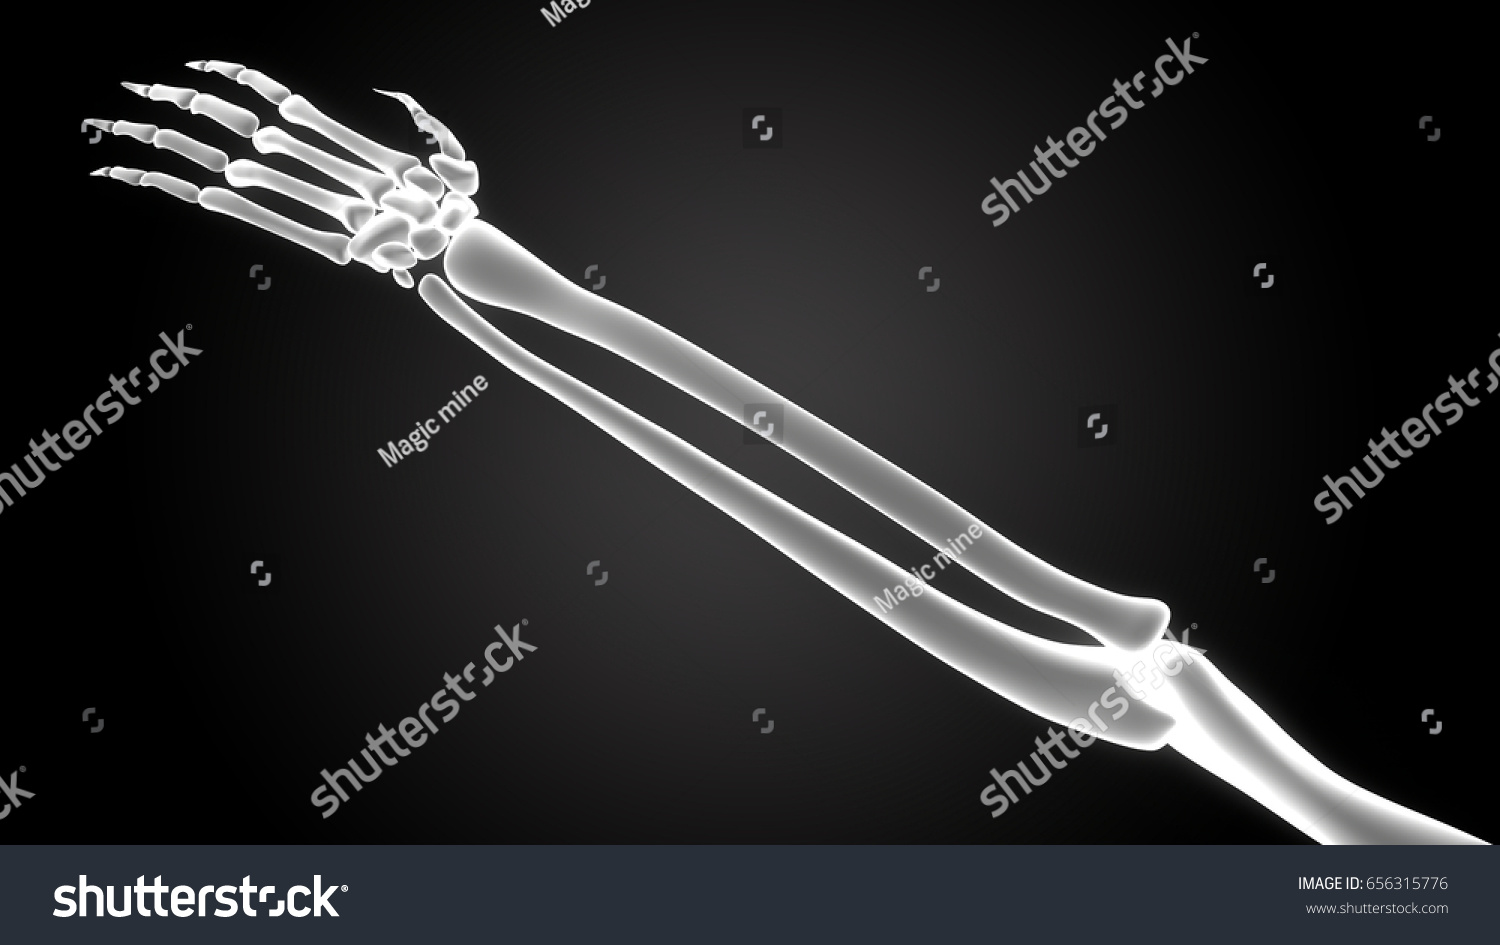 Human Body Bone Joint Pains Anatomy (Hand Joints) in x-ray scan. 3D ...